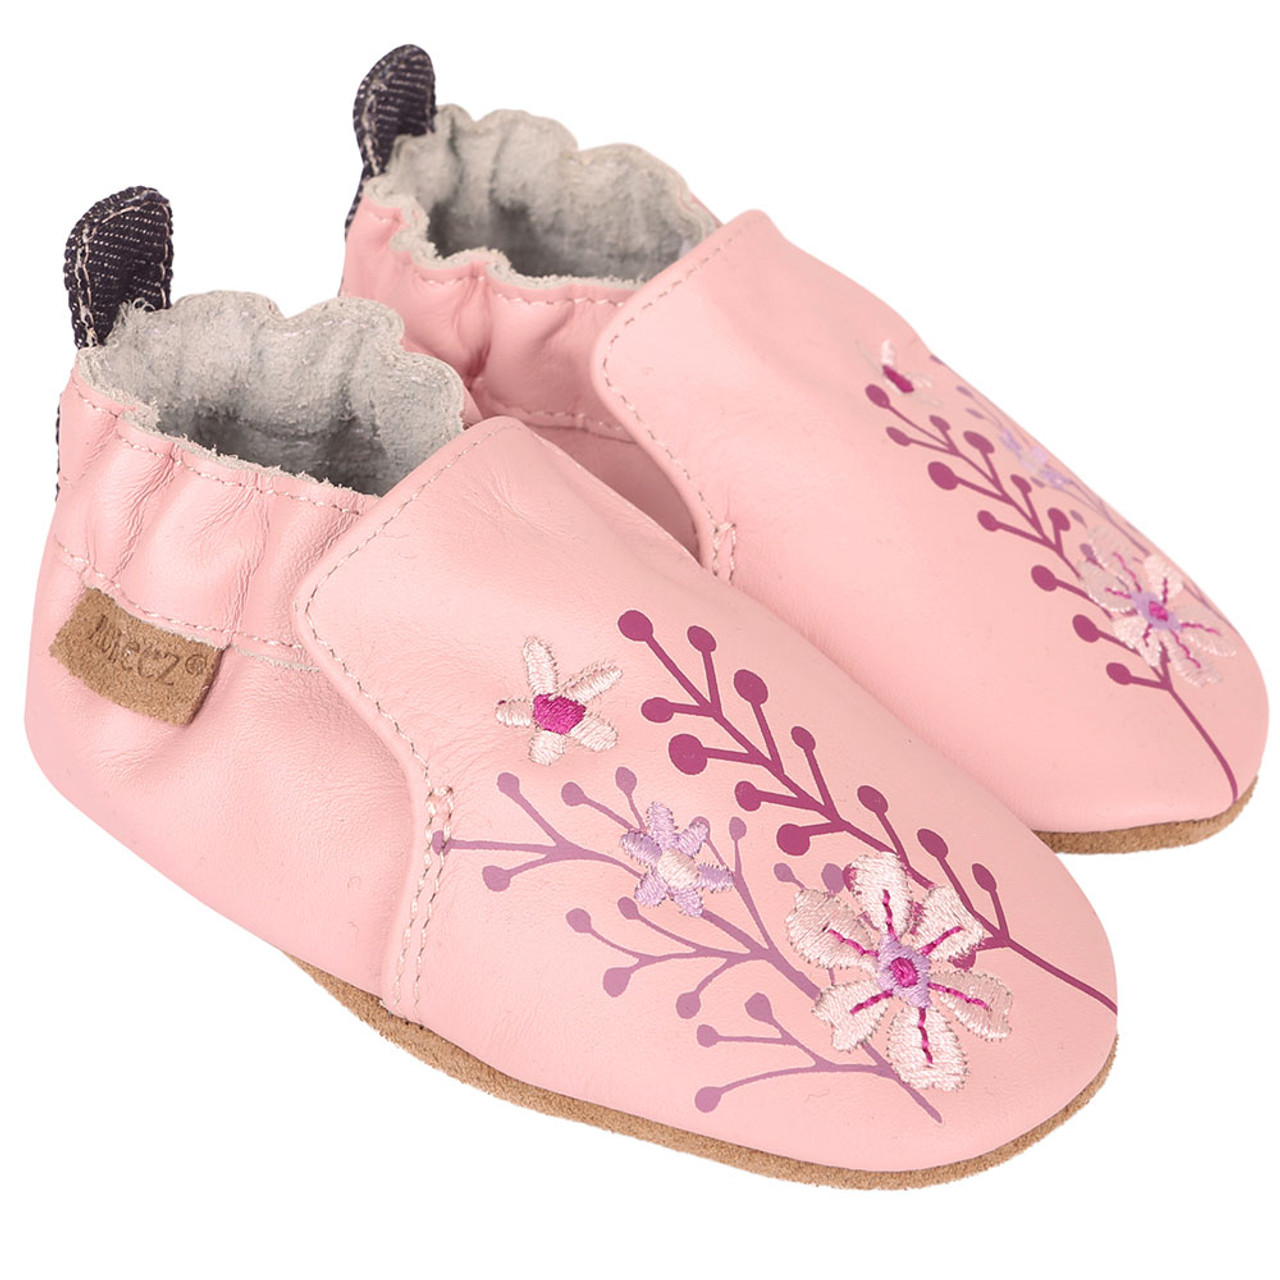 658cd006f90587 Blooming Floral Soft Soles - Angle